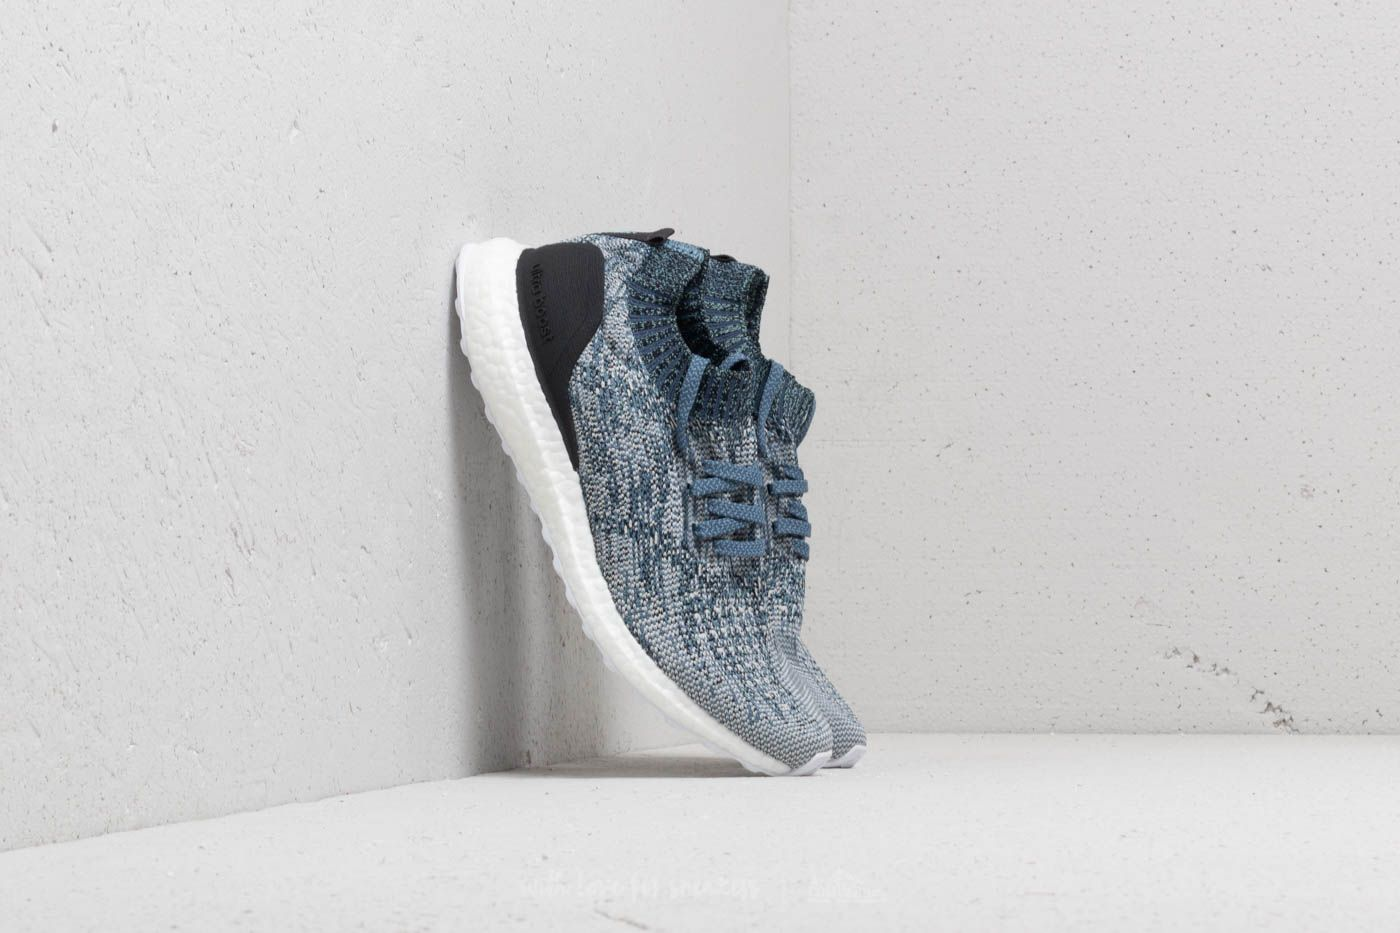 d20a329159f adidas UltraBOOST Uncaged Parley Raw Grey  Chalk Pearl  Blue ...